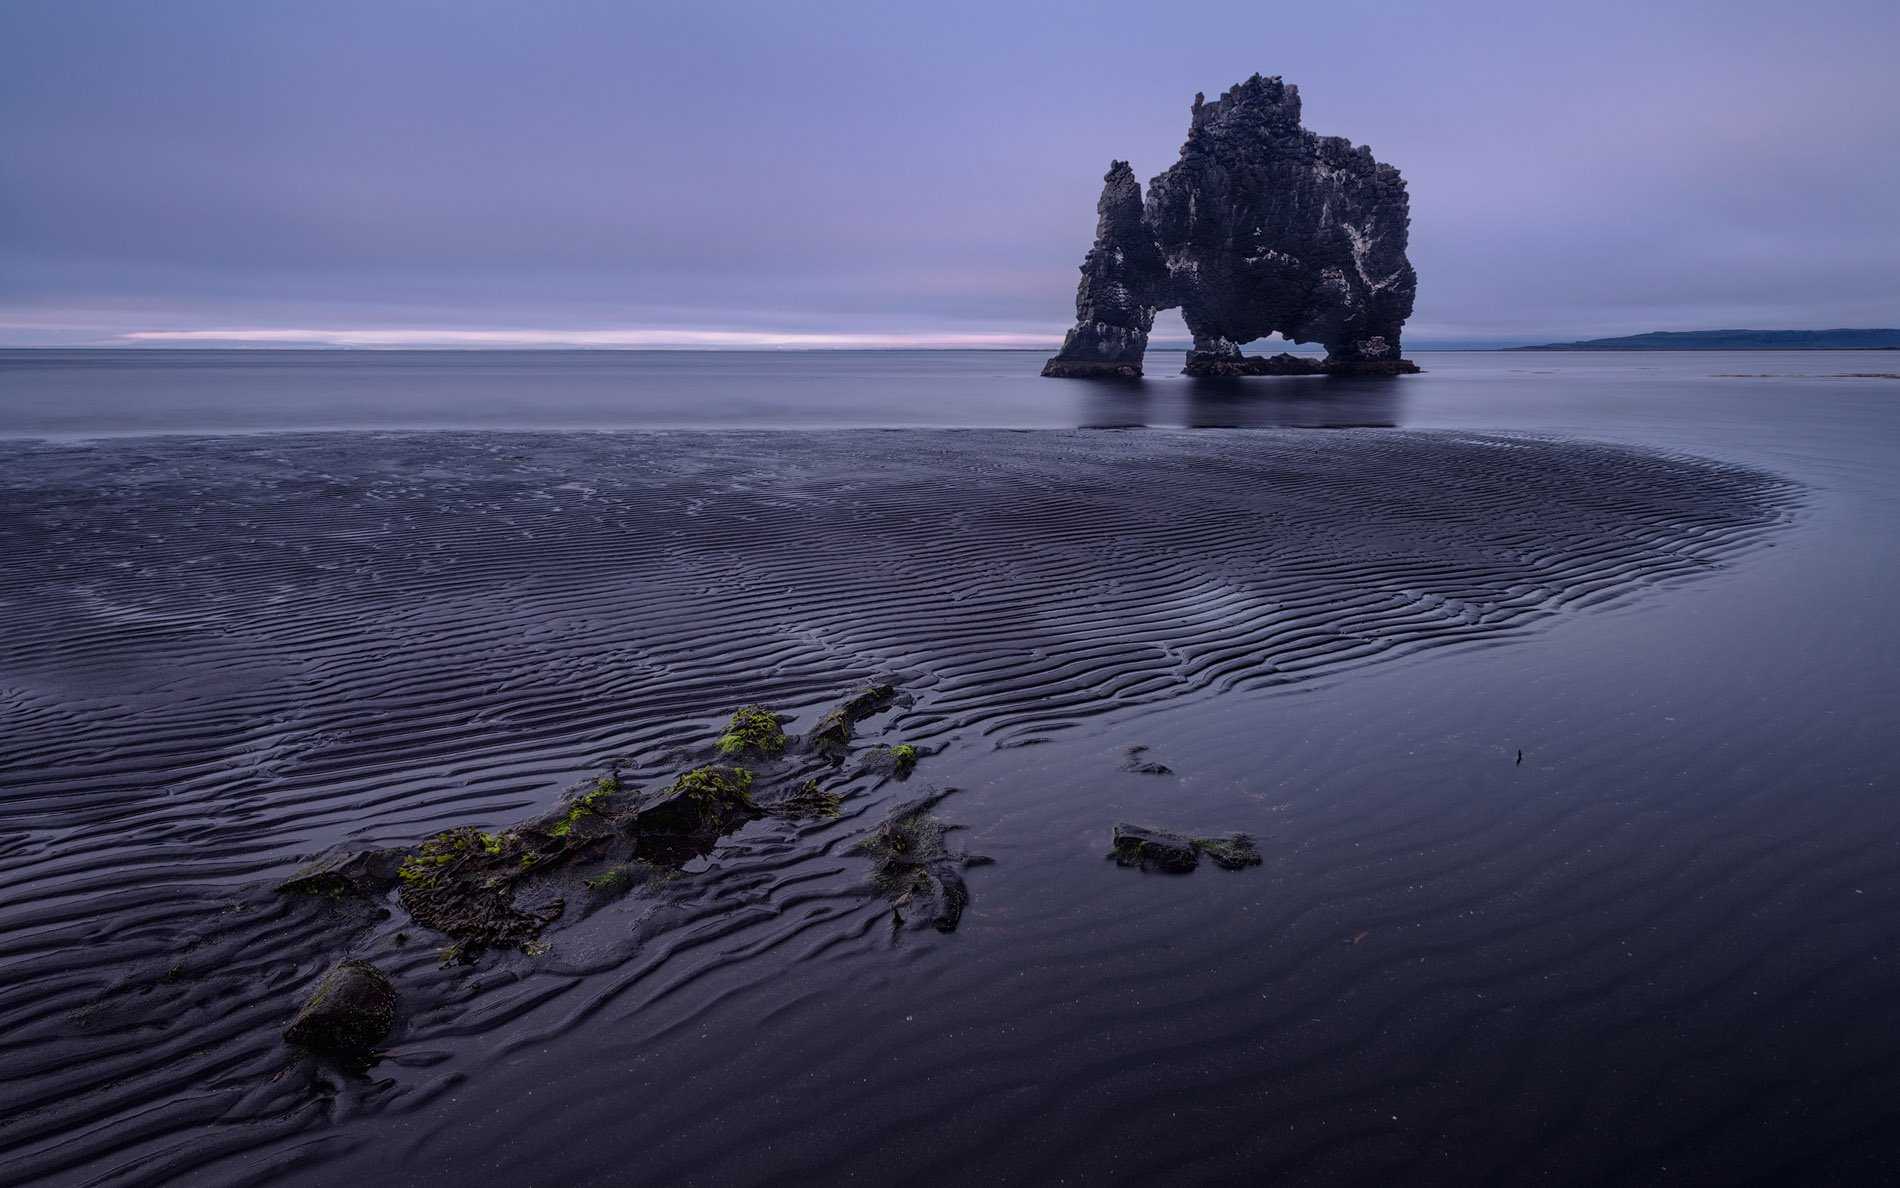 hvitserkur, sea, stock., iceland., Майк Рейфман